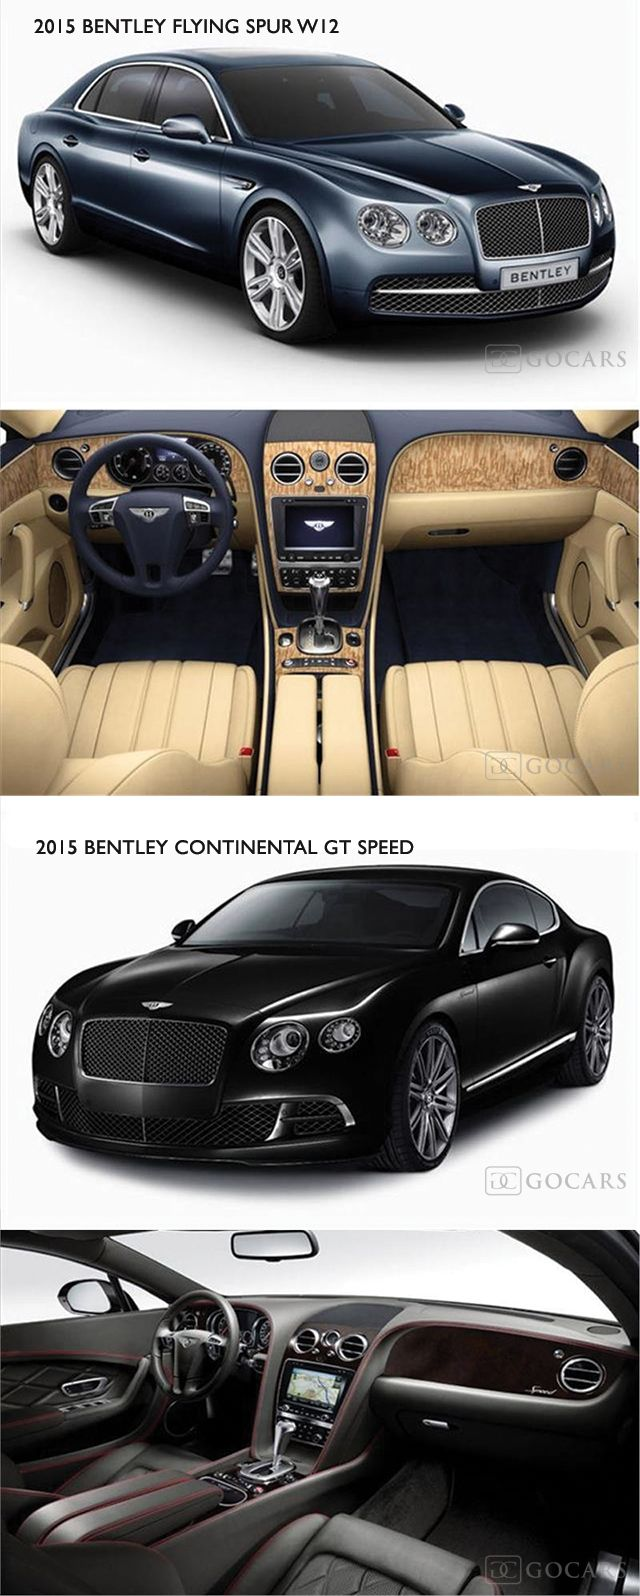 168 best vroom vrooooommm images on pinterest garages nice 2015 bentley flying spur w12 and 2015 bentley continental gt speed publicscrutiny Choice Image